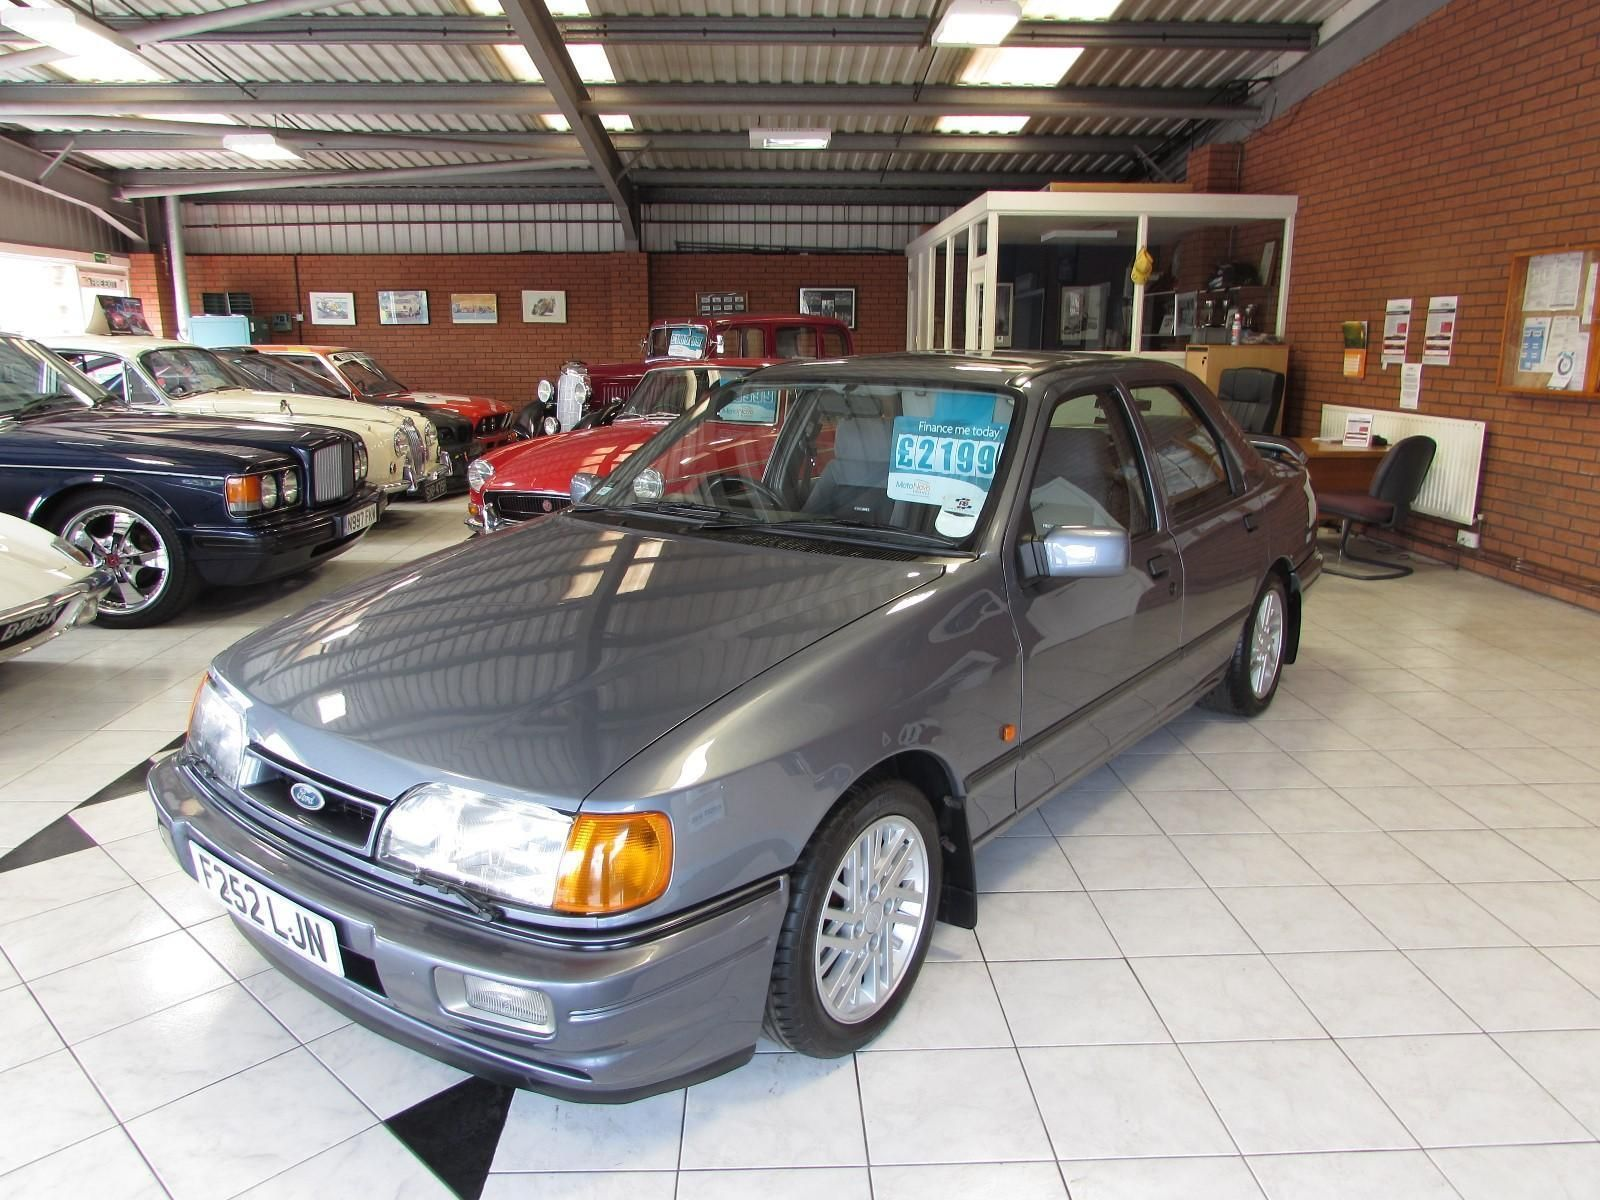 Ford Sierra Sapphire 2 0 Rs Cosworth Looks So Much Like My Old